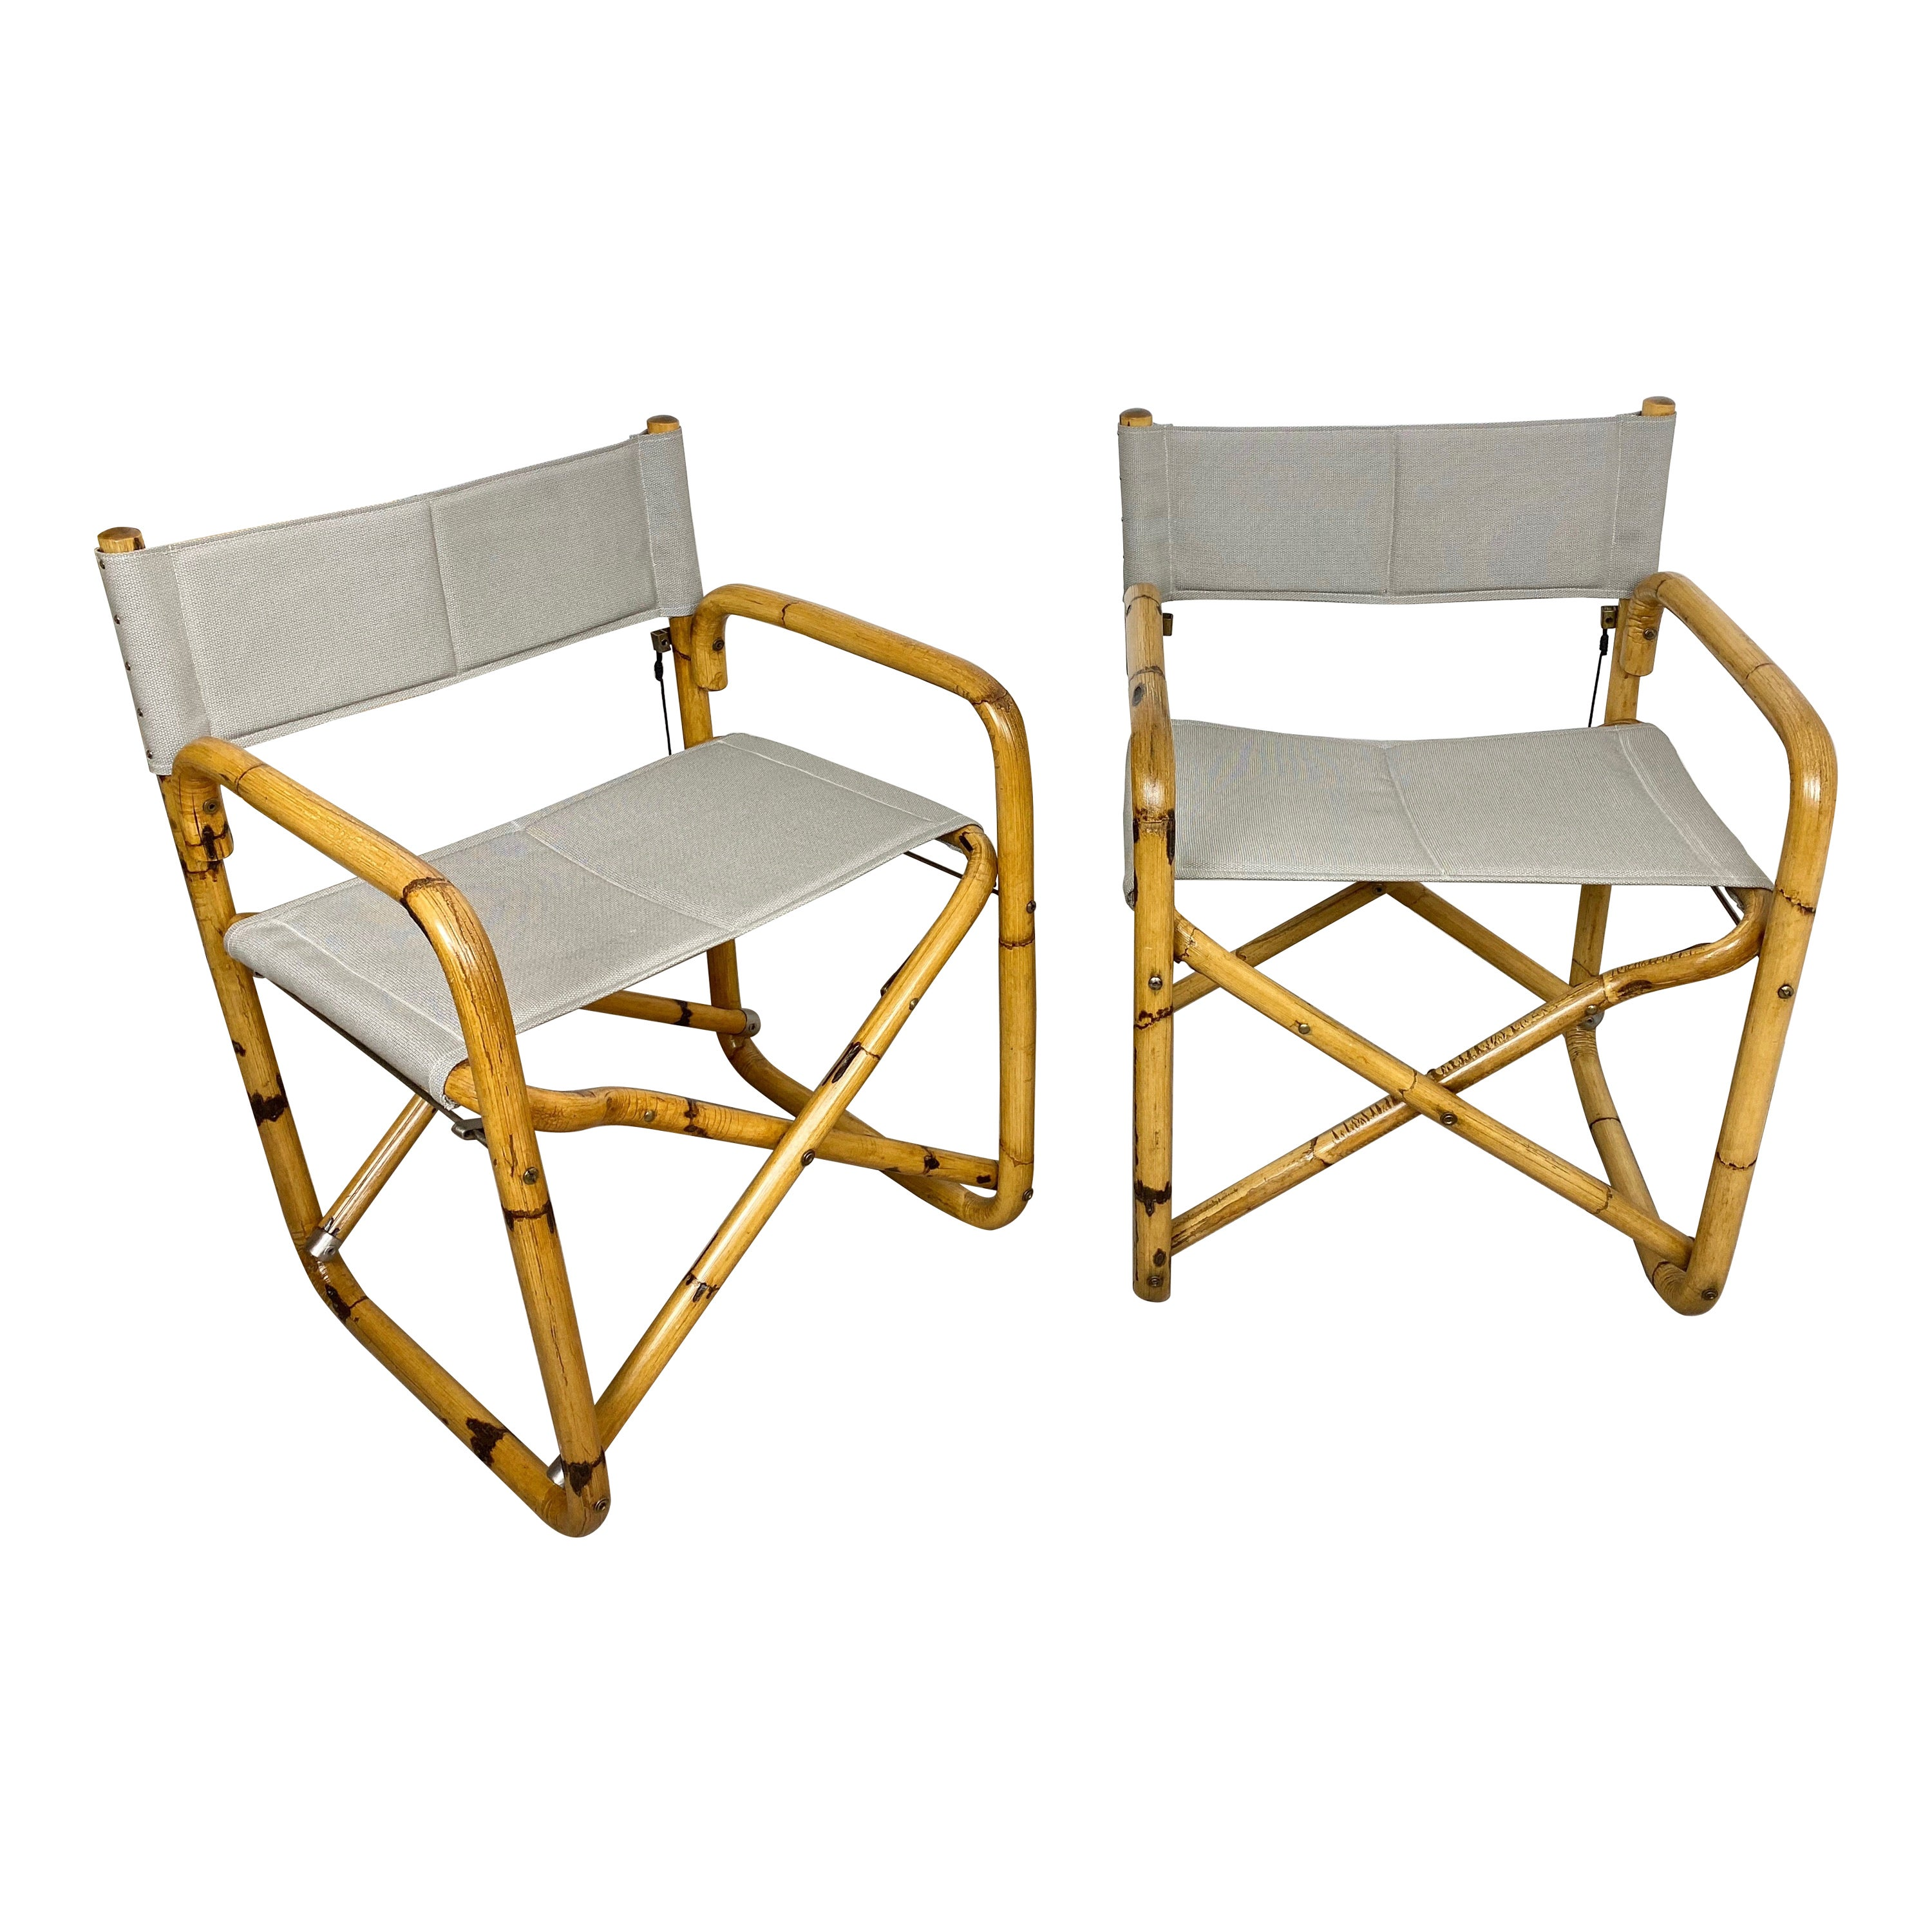 Pair of 1960s Bamboo Folding Directors Chair, Italy